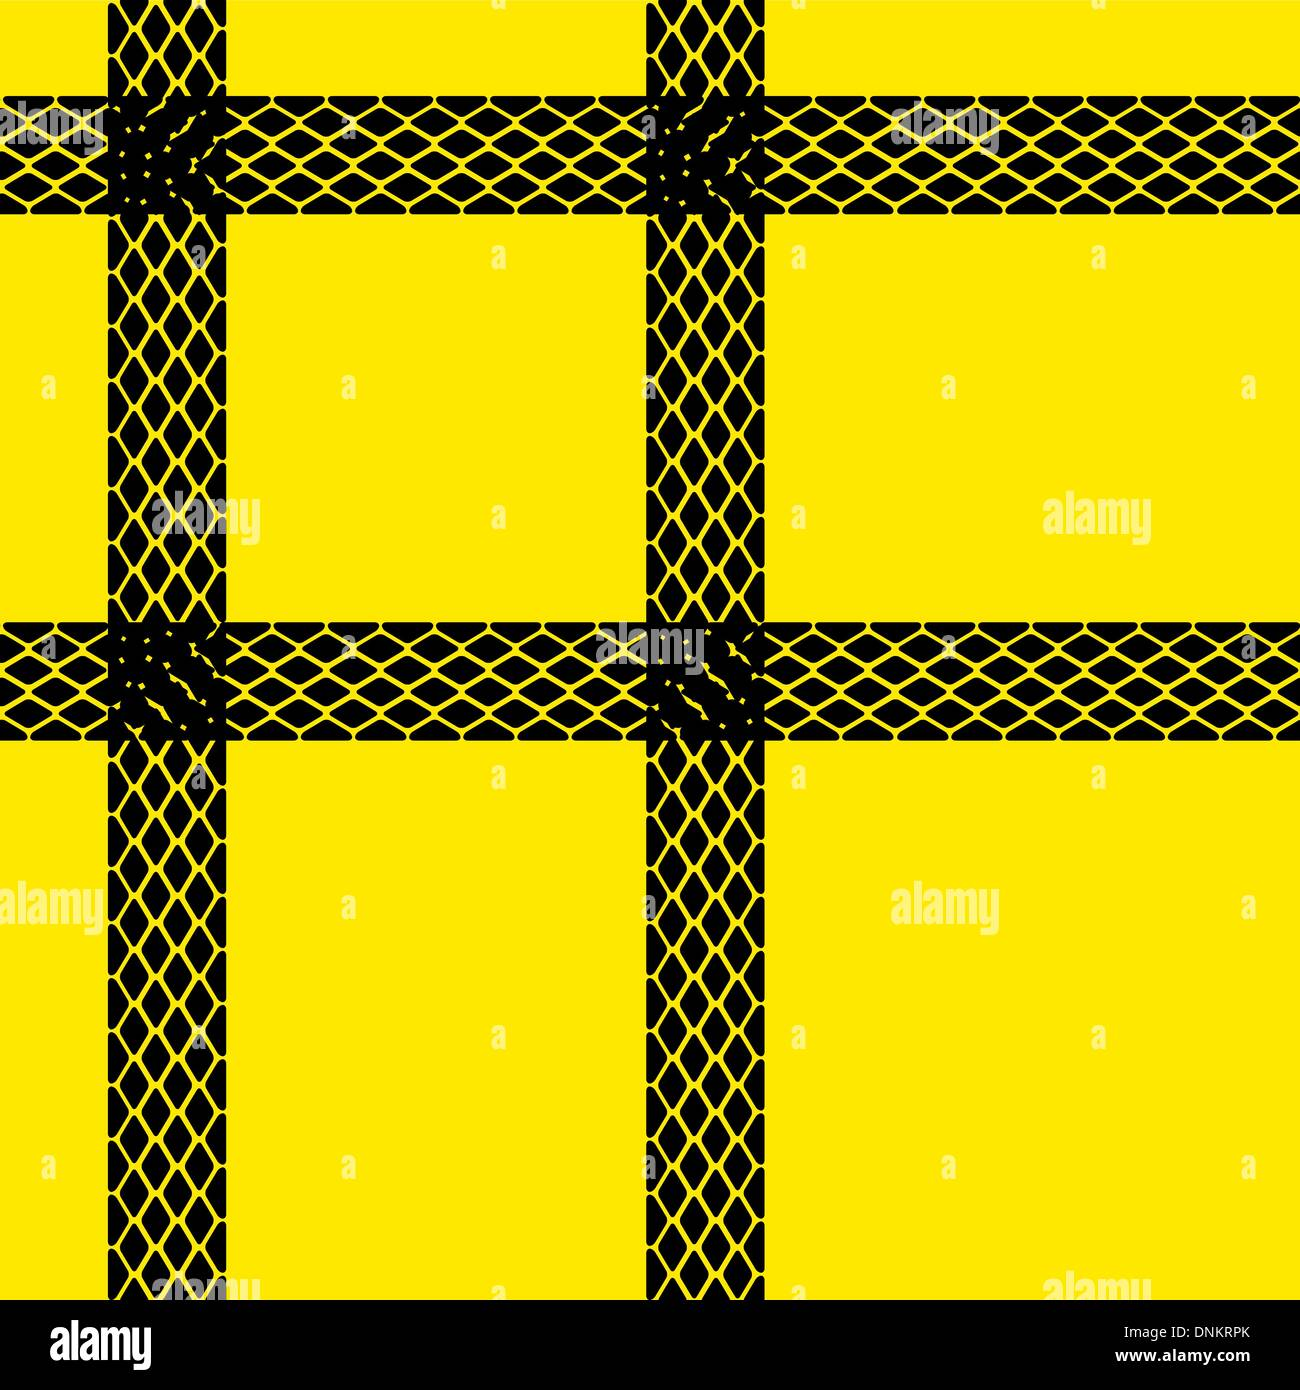 Seamless wallpaper tire tracks pattern illustration vector background Stock-Vektorgrafik